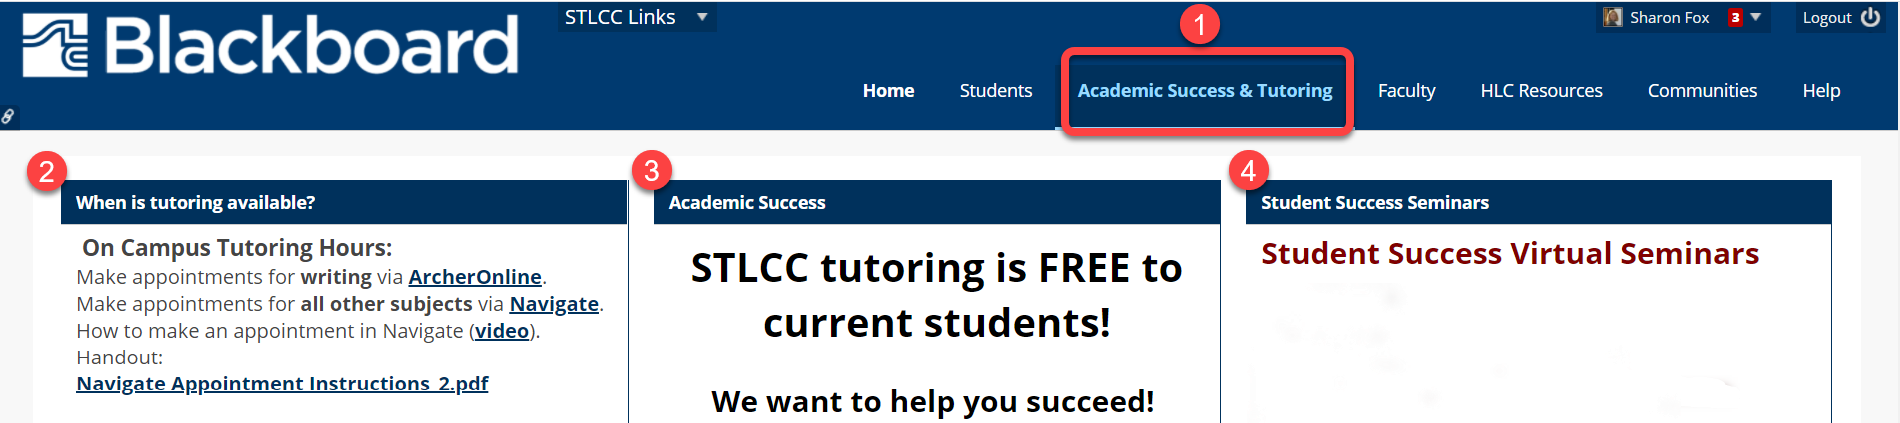 Academic Success and Tutoring page in Blackboard